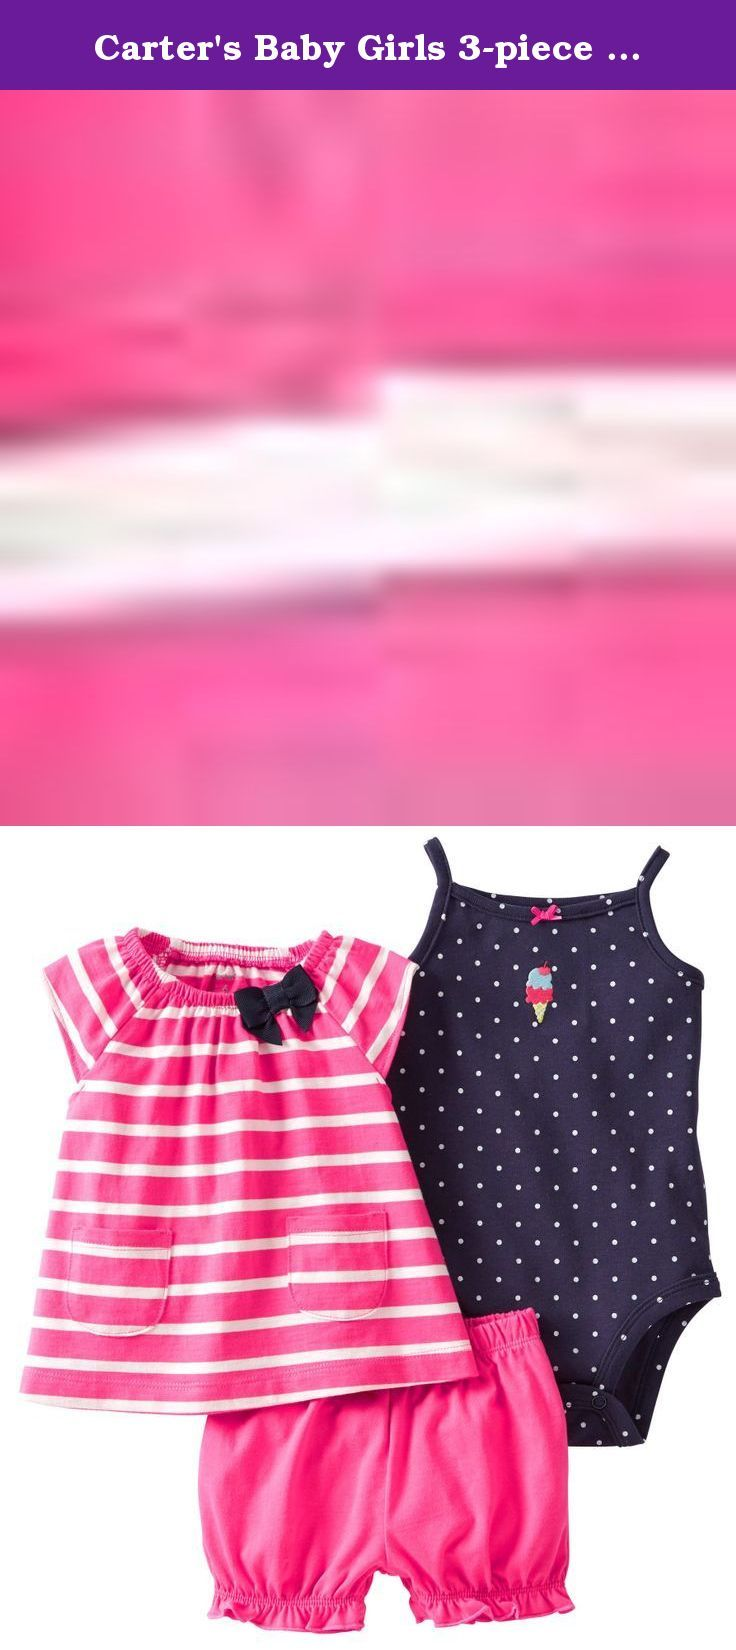 Carter's Baby Girls 3-piece Bodysuit & Diaper Cover Set (6 Months, Pink). A sleeveless top with coordinating bodysuit and diaper cover is a versatile set. Stripes on bodysuit are a fresh new look. Set includes 1 sleeveless top, 1 tank-style stripe bodysuit and 1 coordinating diaper cover Tank-style bodysuit features nickel-free snaps on reinforced panel to last longer through all those diaper changes.